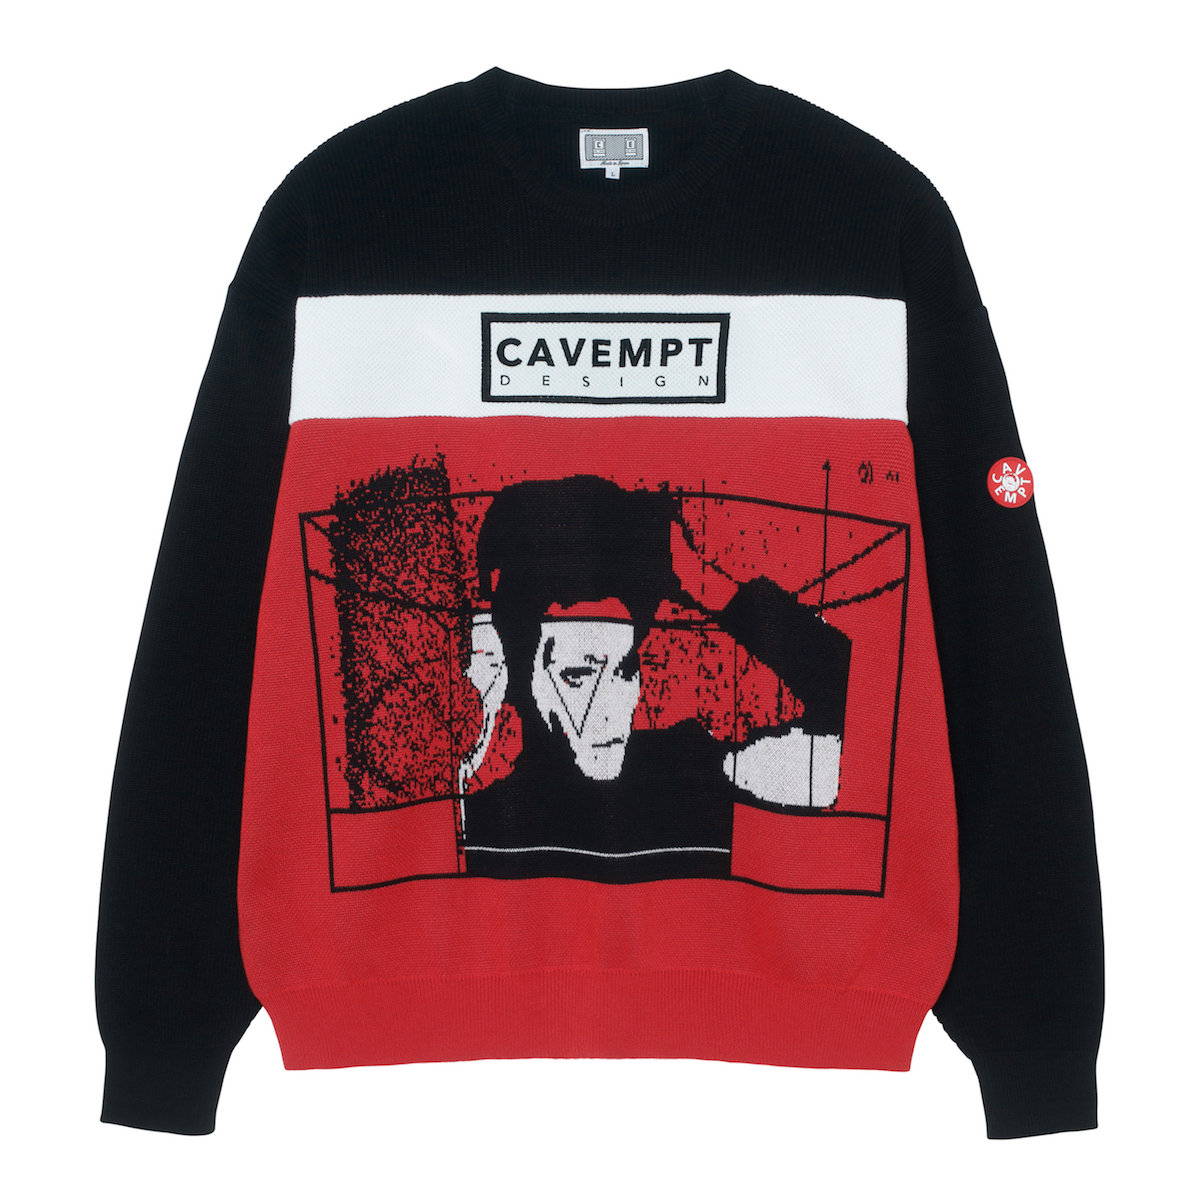 CAVEMPT DESIGN KNIT